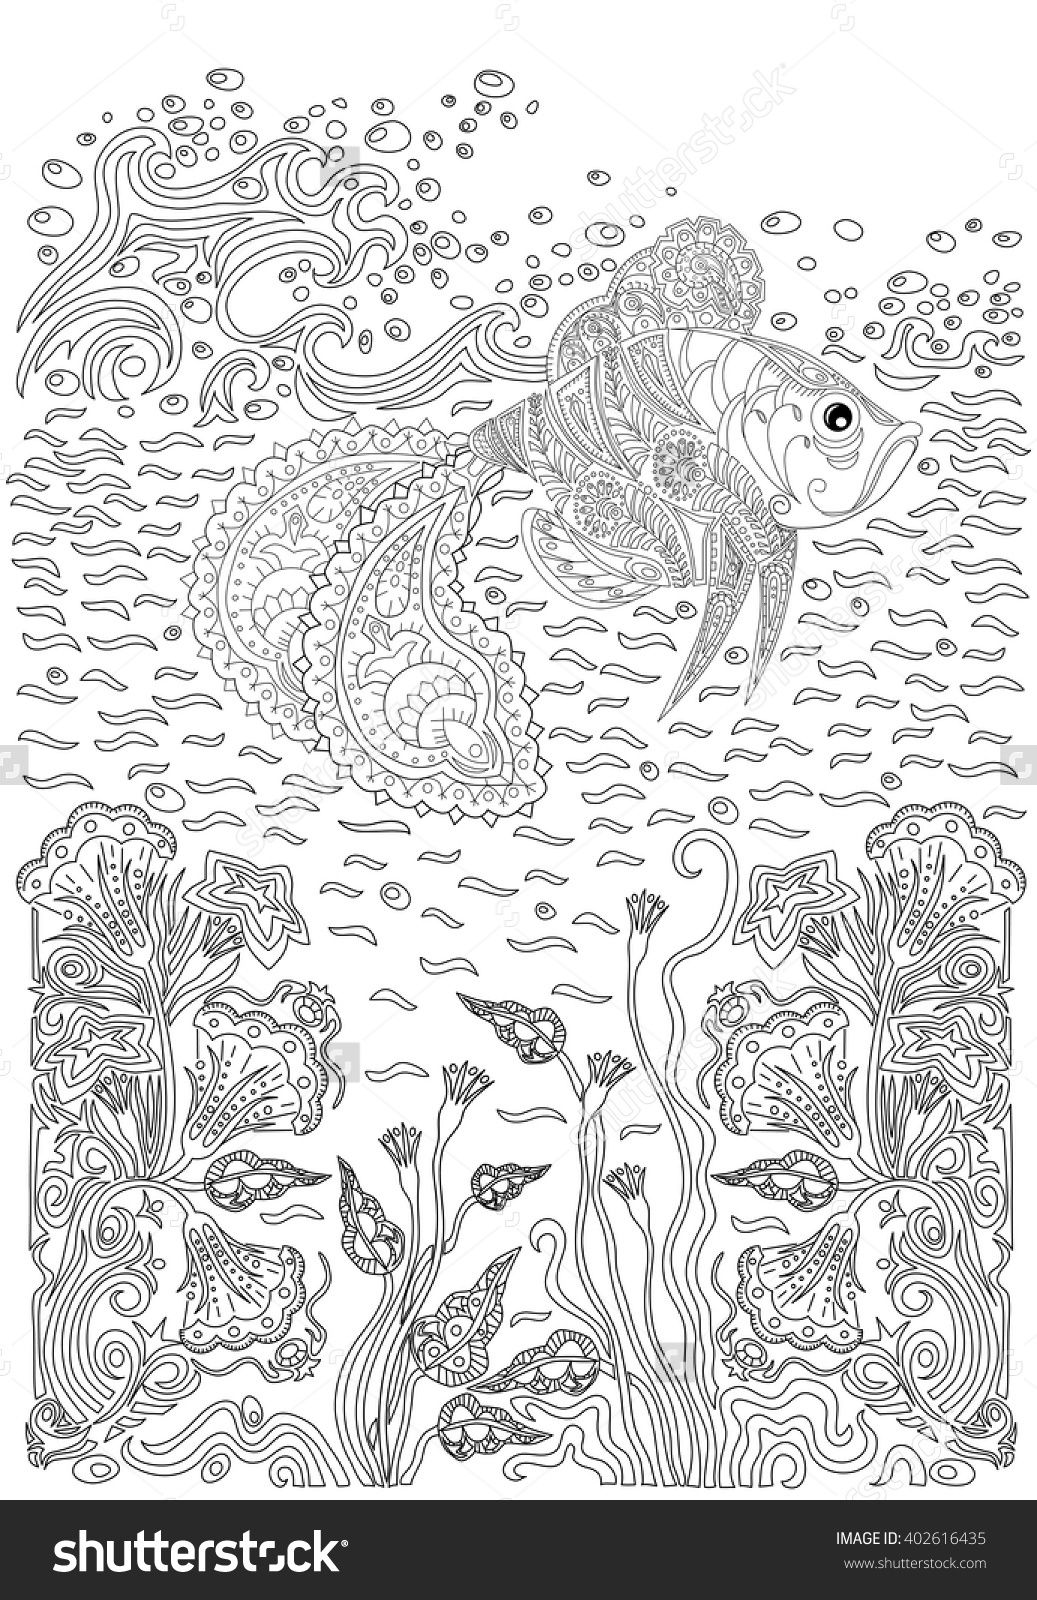 Fish In Waves And Seaweed Coloring Page Zentangle 402616435 Shutterstock